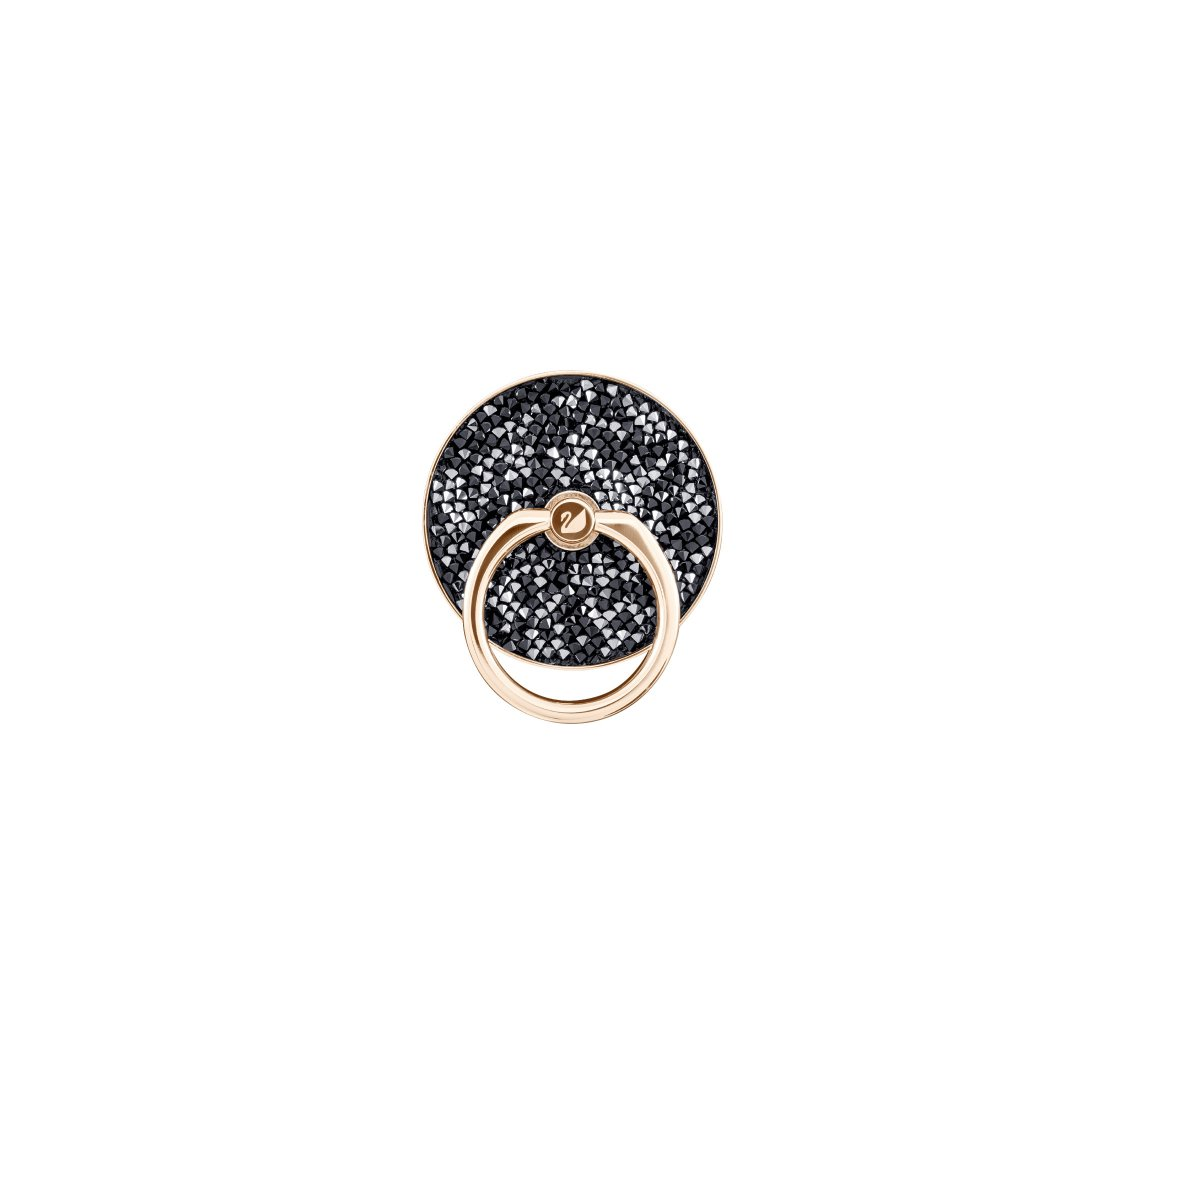 SWAROVSKI GLAM ROCK RING:STICKERS BLK/STS PRO